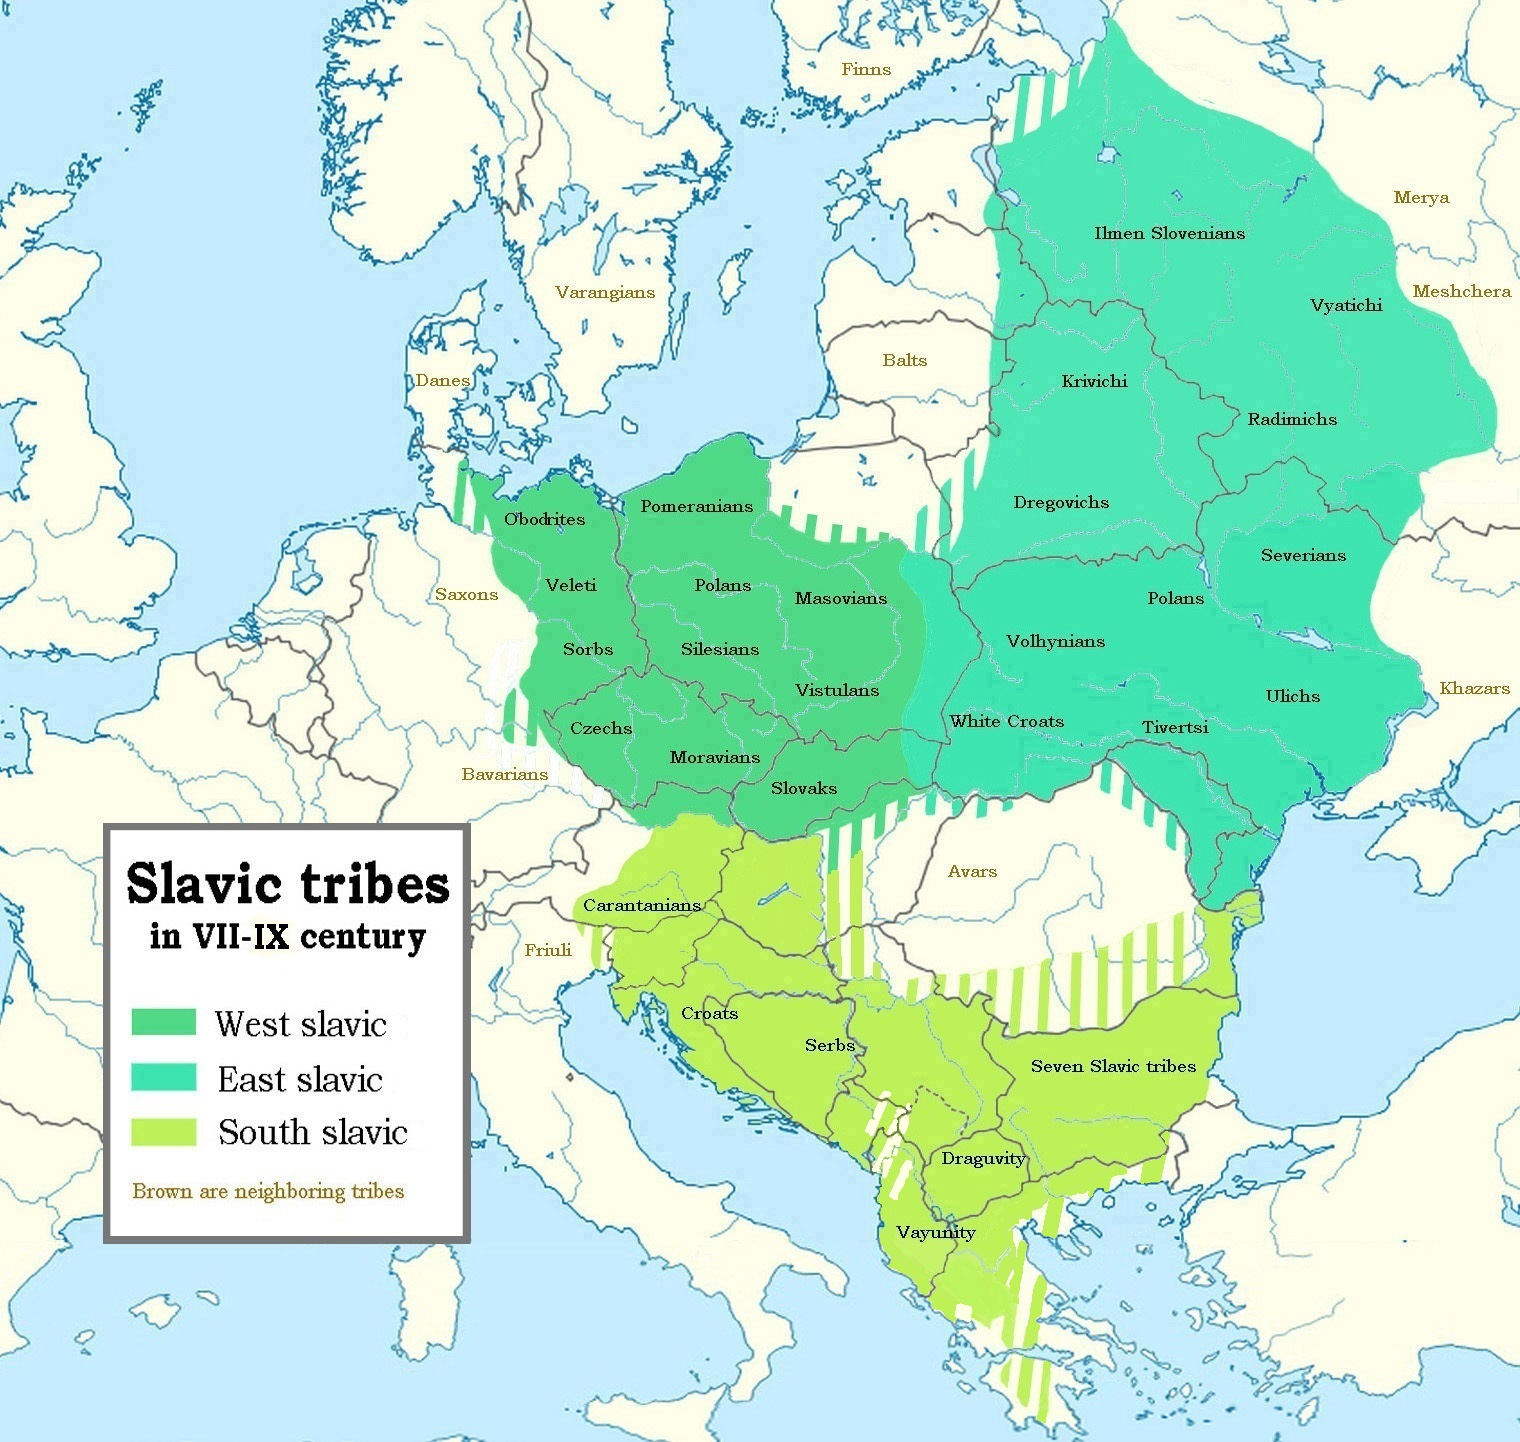 Slavic_tribes_in_the_7th_to_9th_century